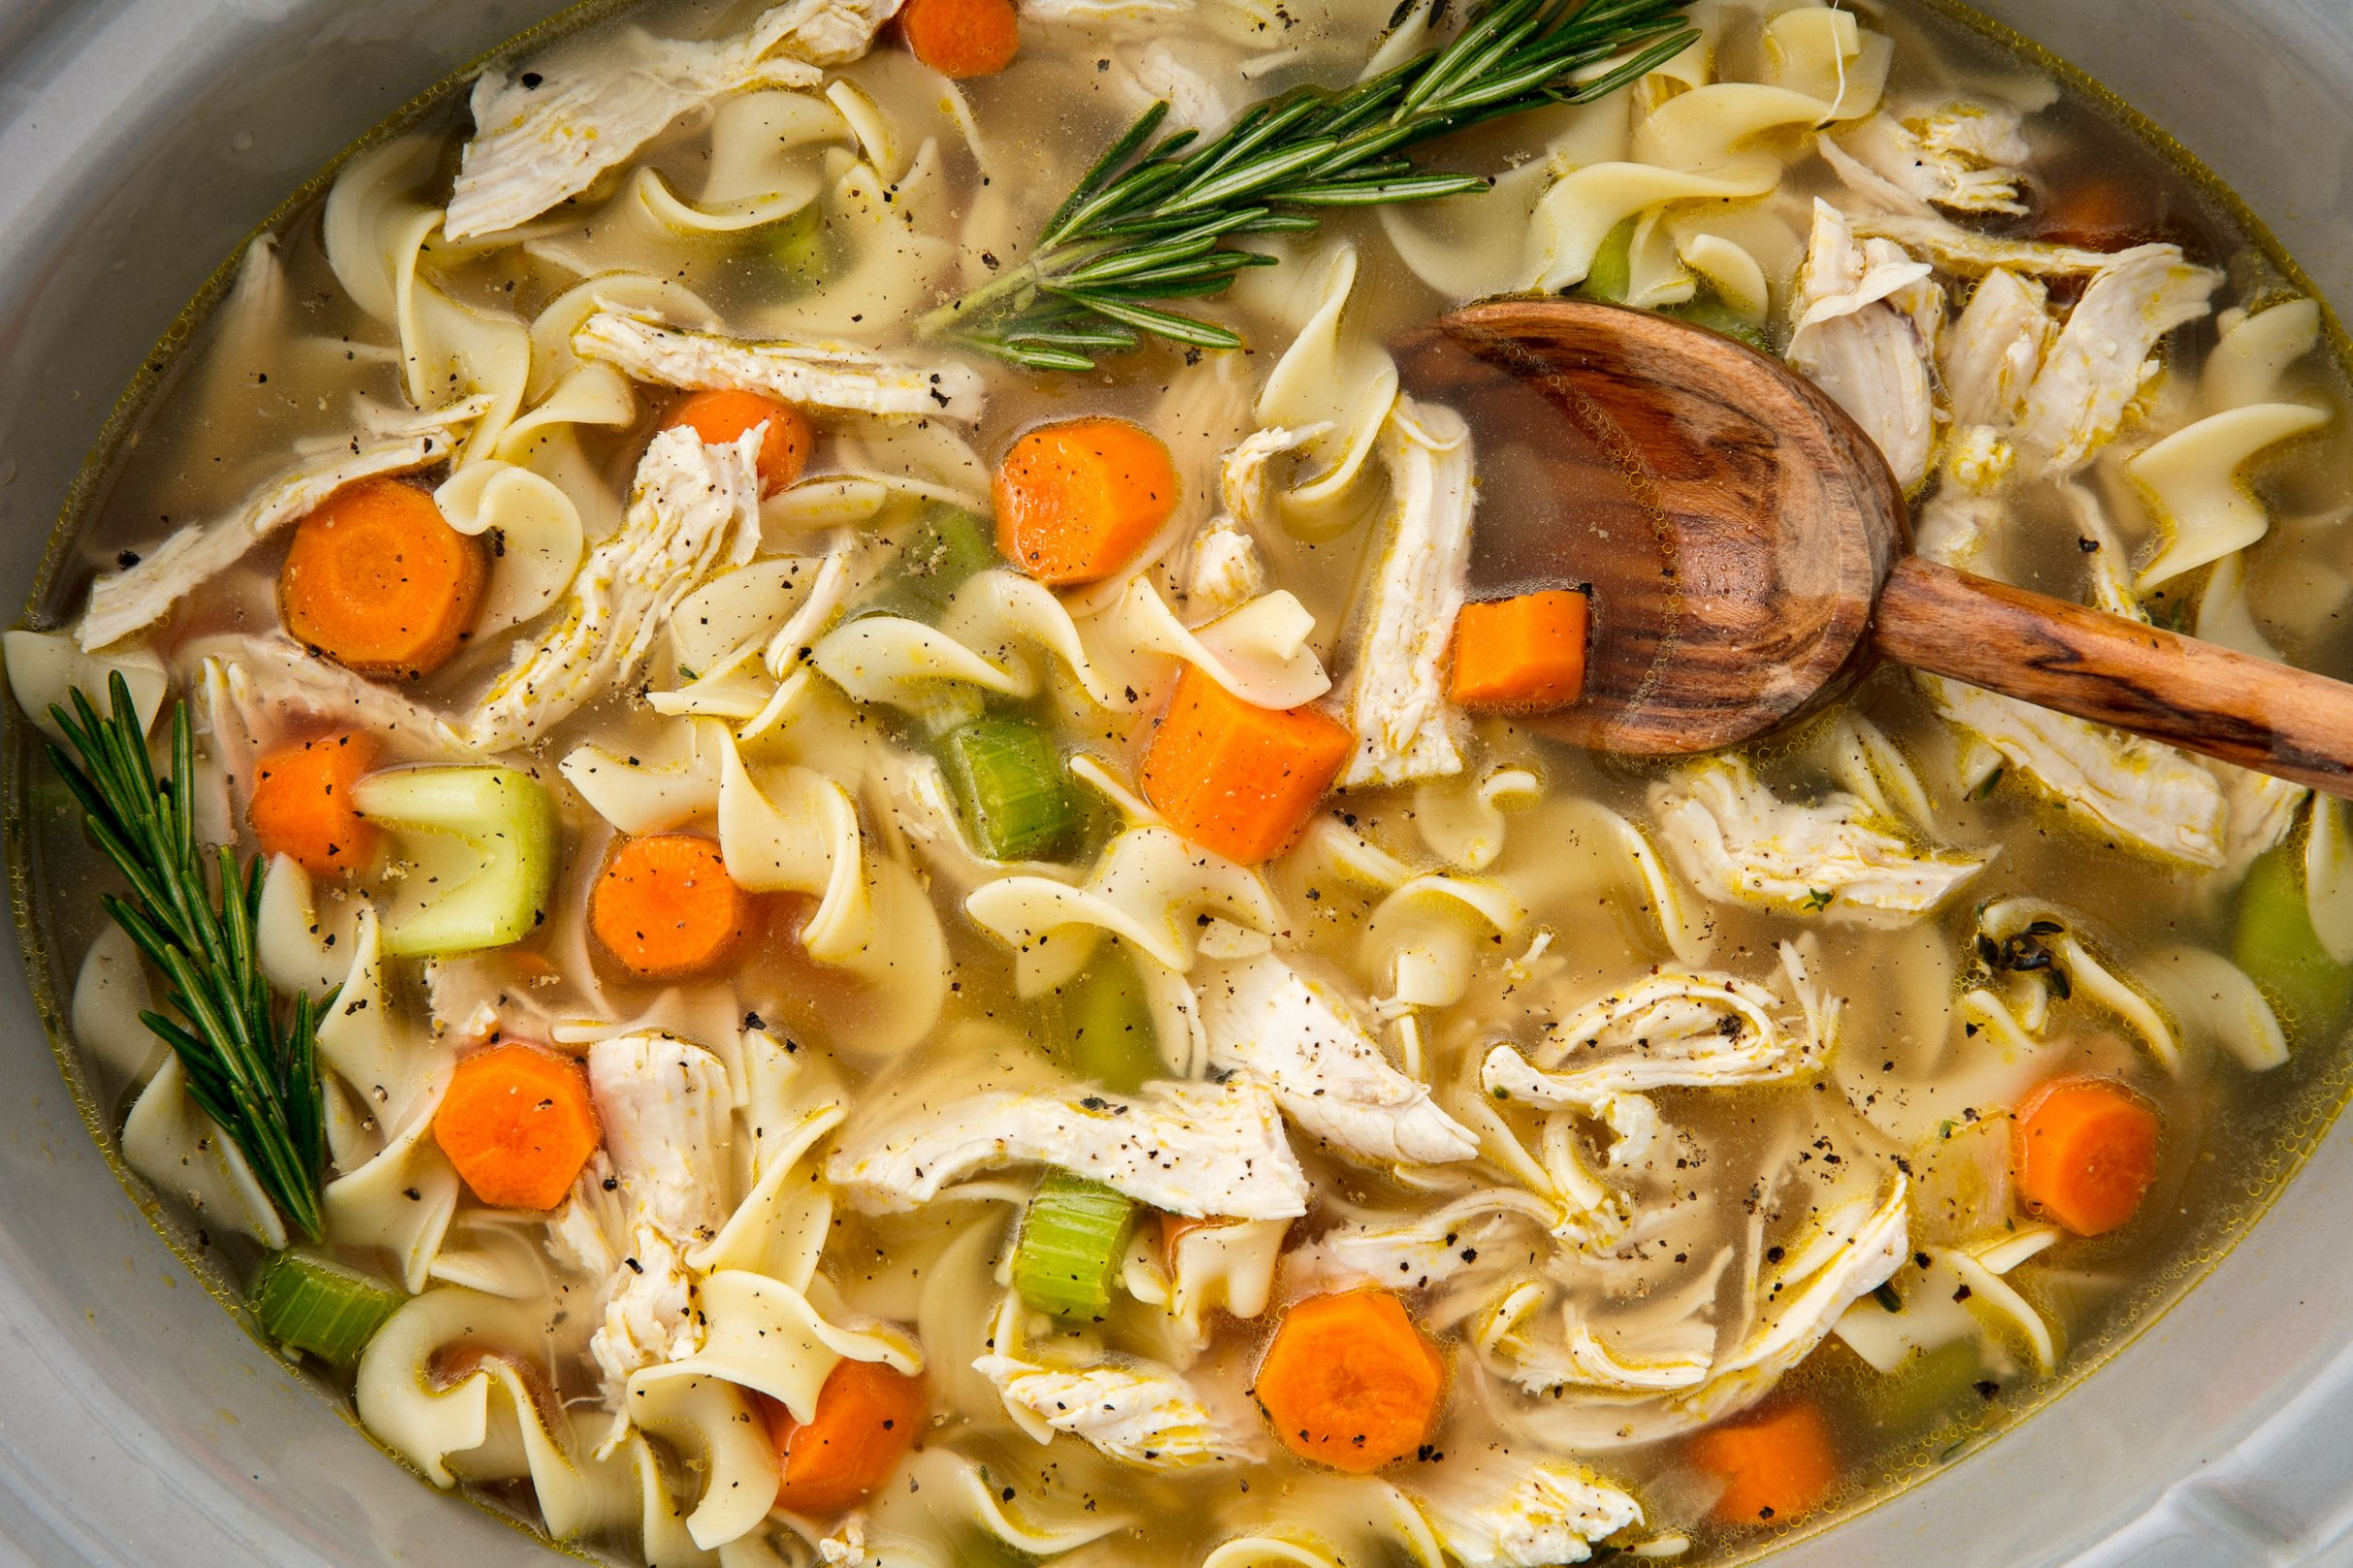 Slow Cooker Chicken Noodle Soup Will Warm Up Your Whole Crew - Zucchini Spiralizer Recipes Chicken